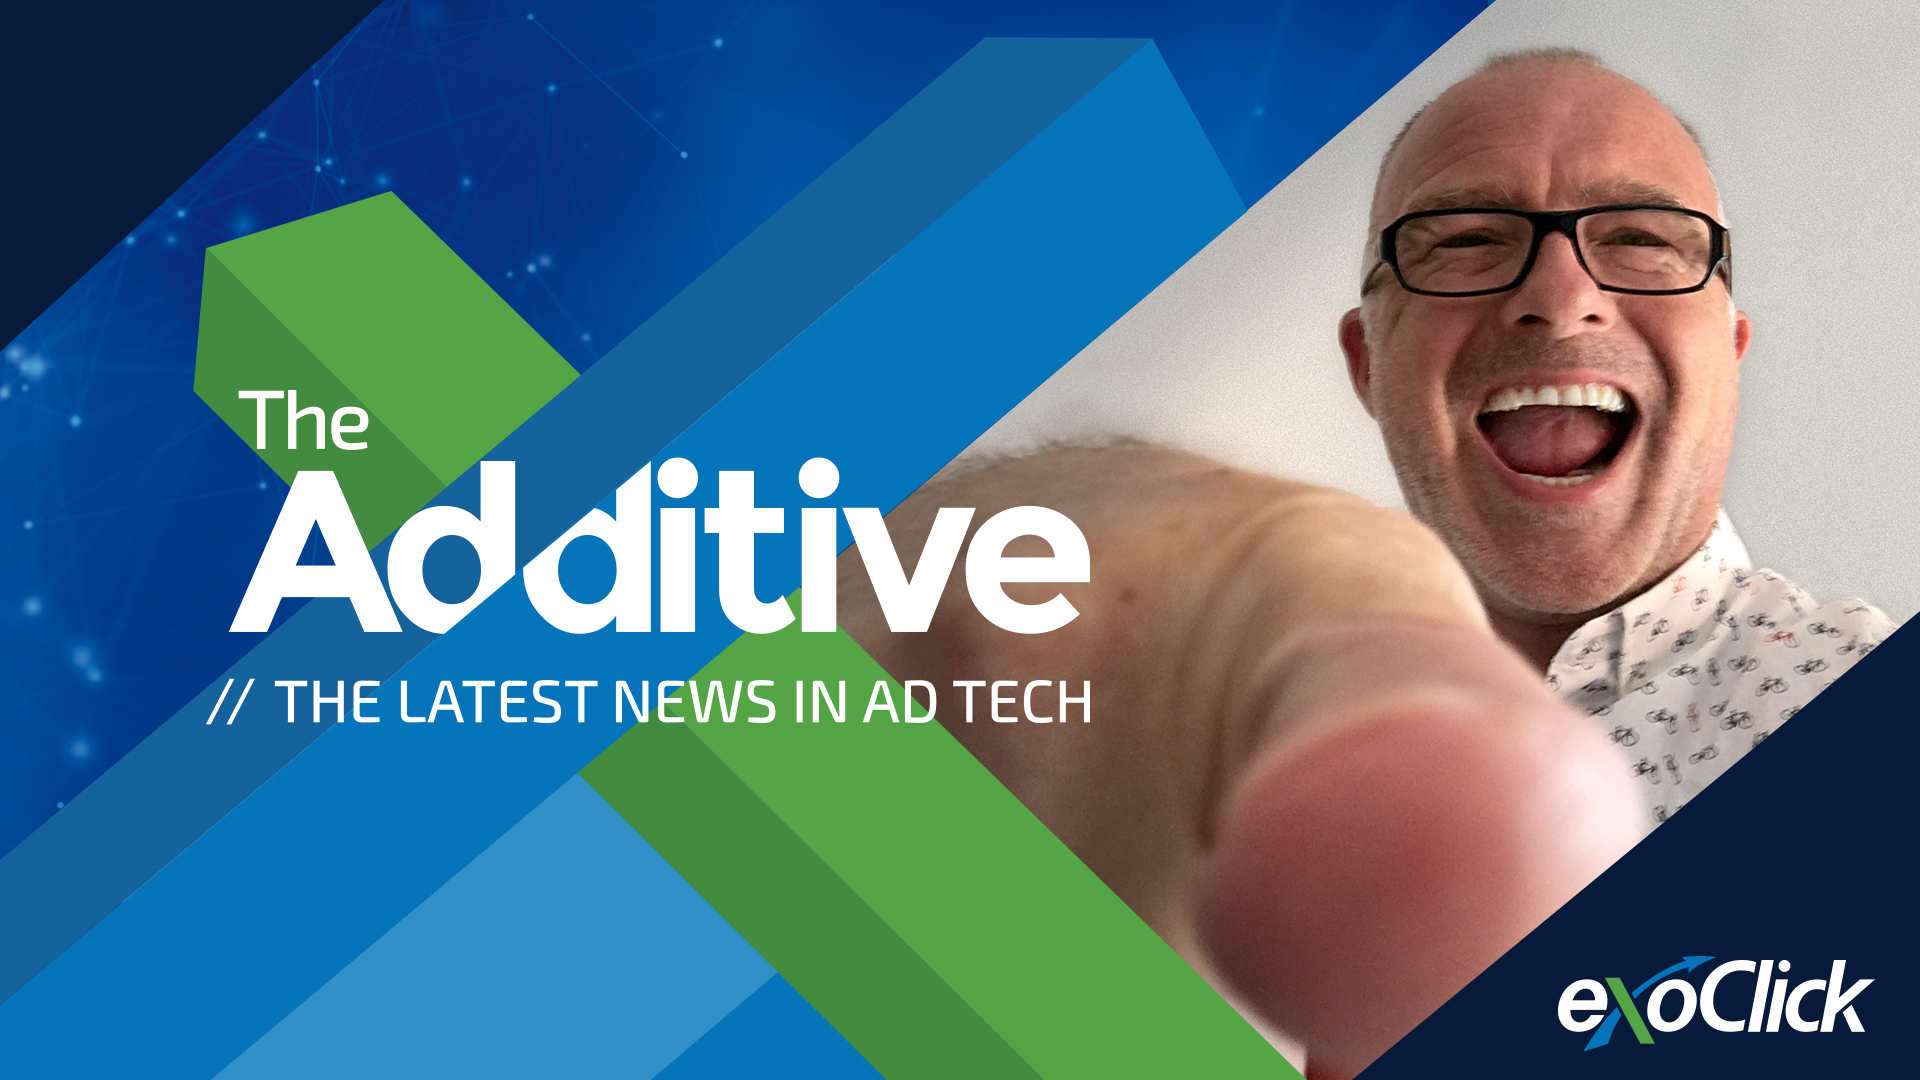 The Additive July/August 2020